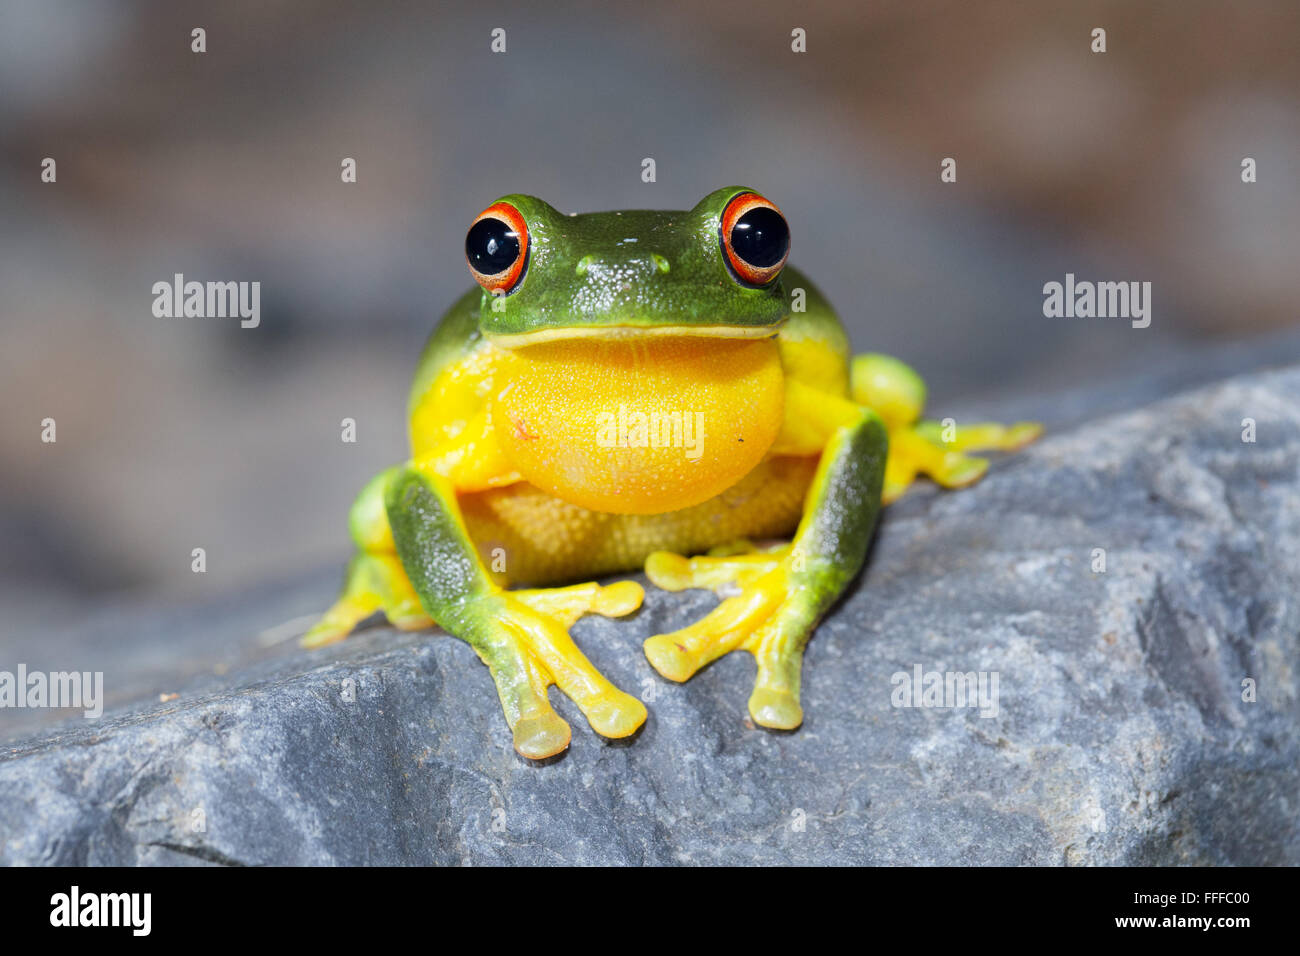 Australian Red-eyed tree frog (Litoria chloris), également connu sous le nom de Orange-eyed tree frog, NSW, Photo Stock